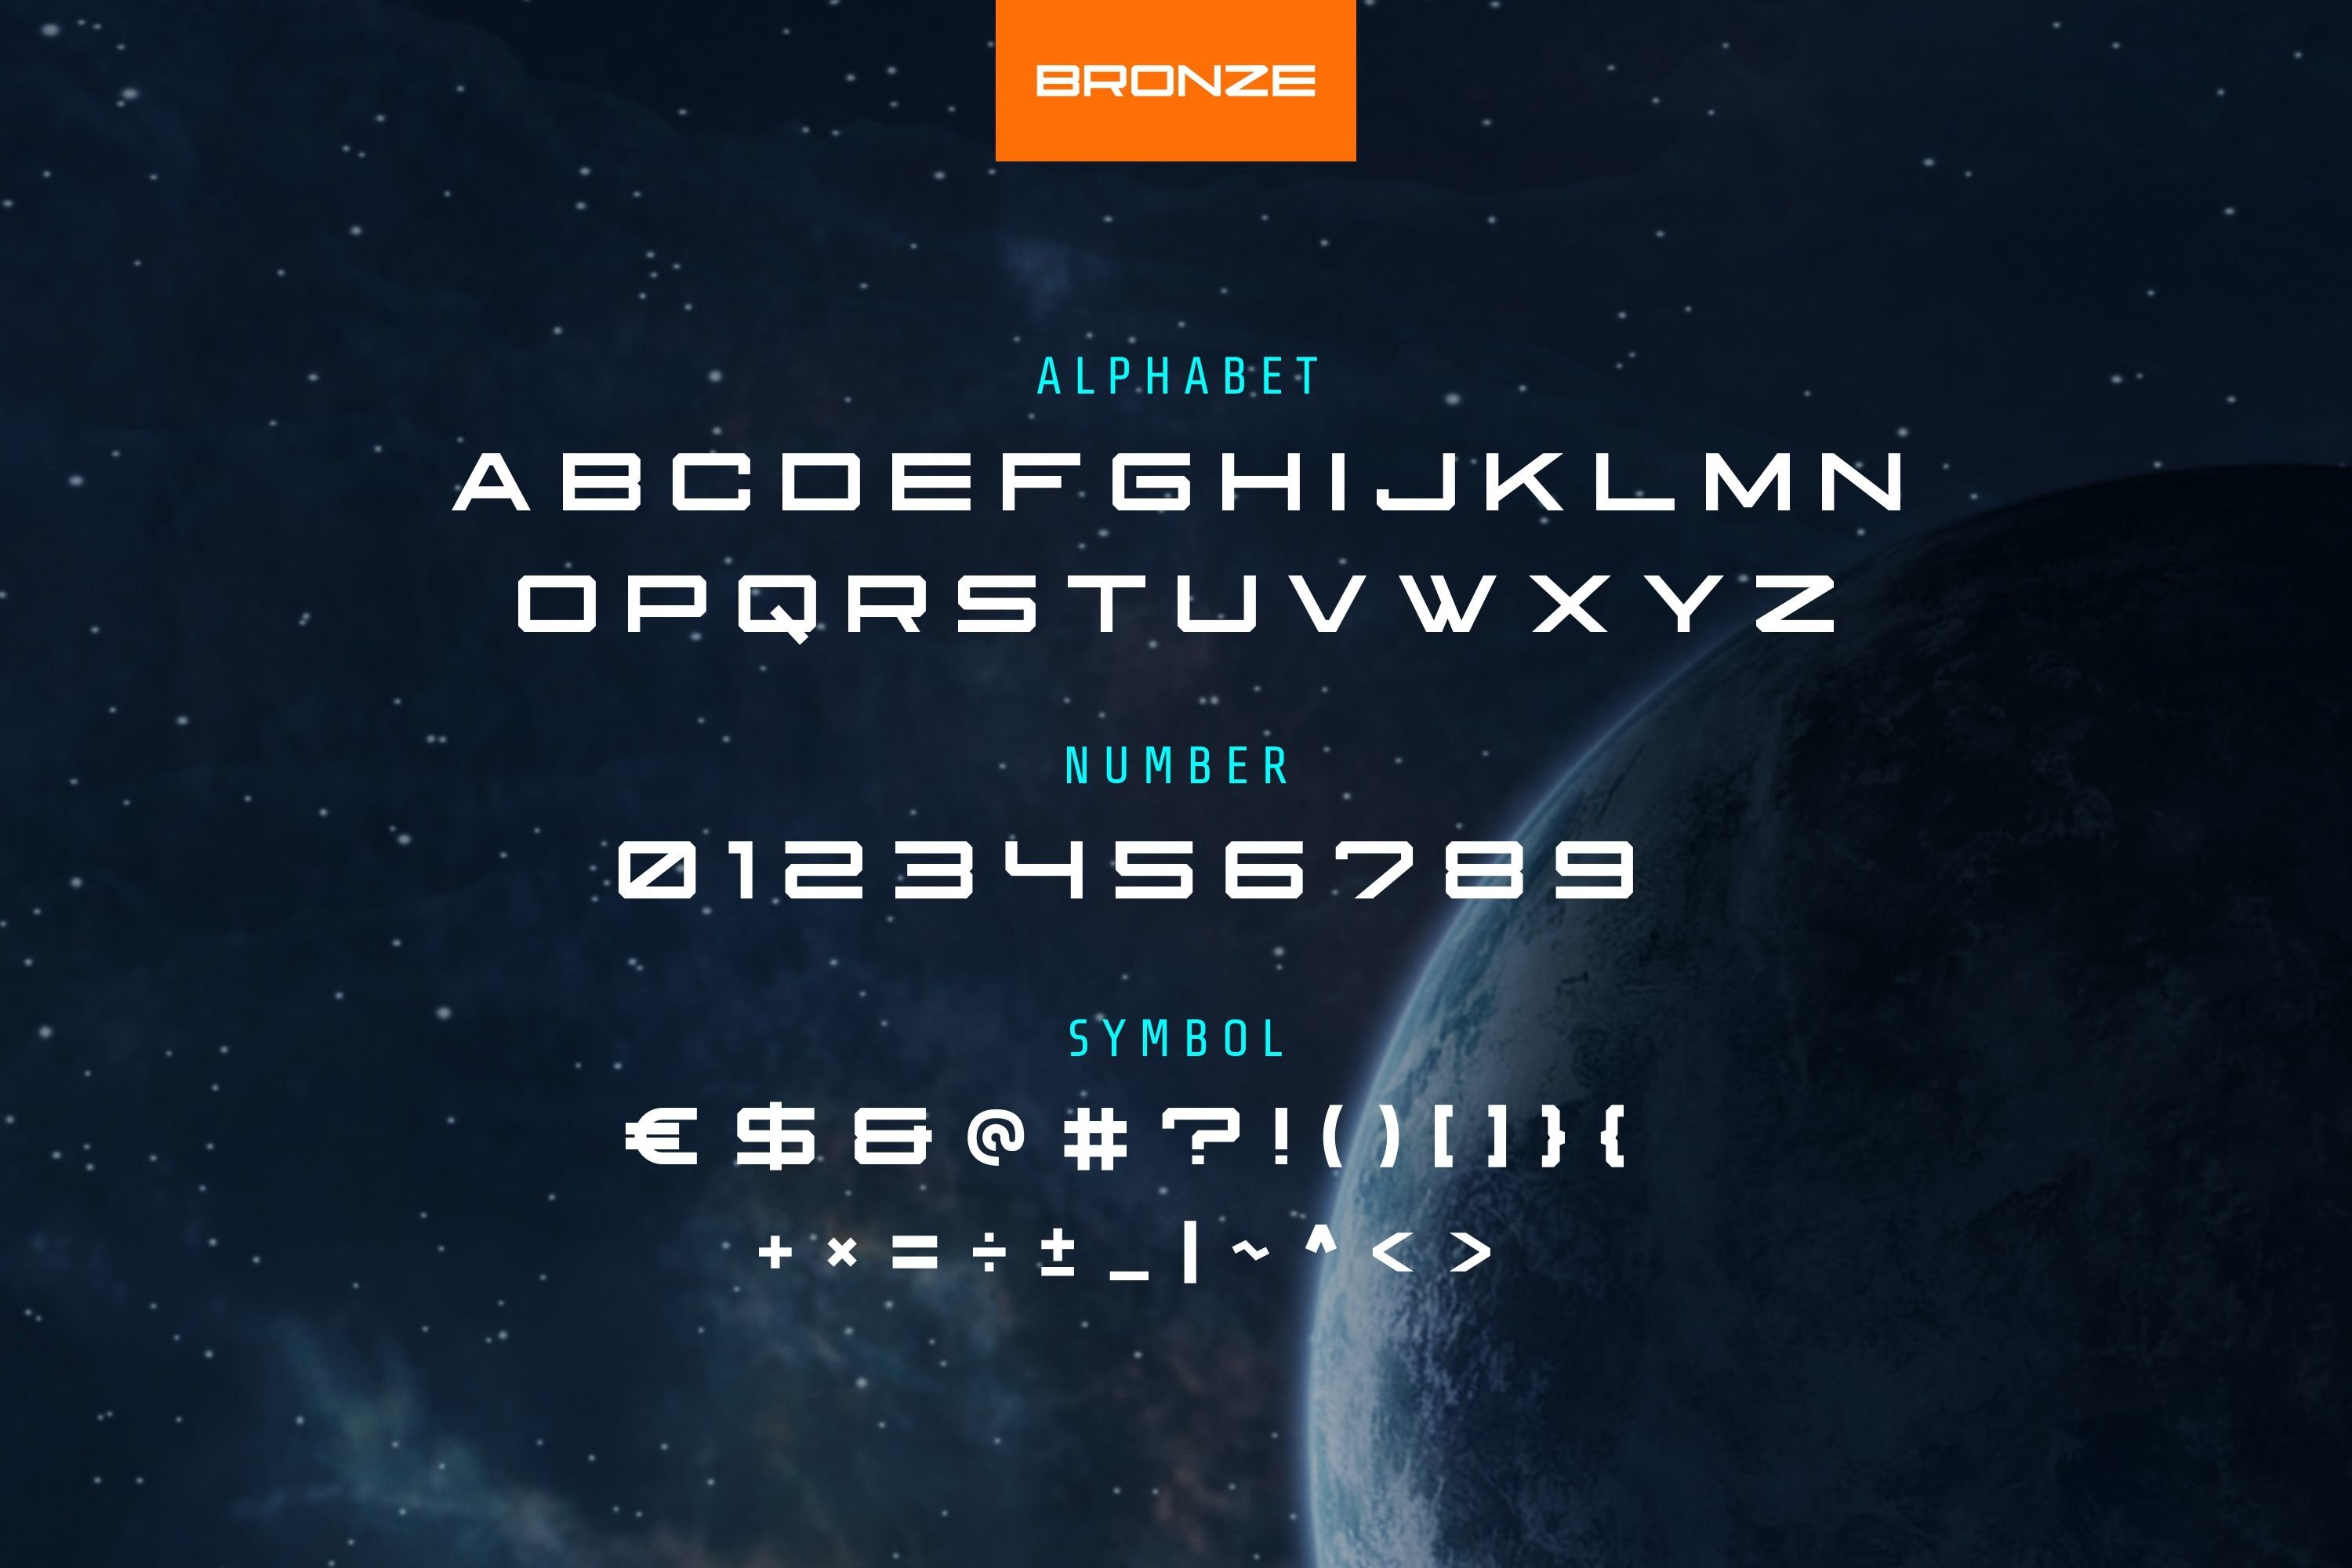 Bronze Modern and Futuristic Font example image 5